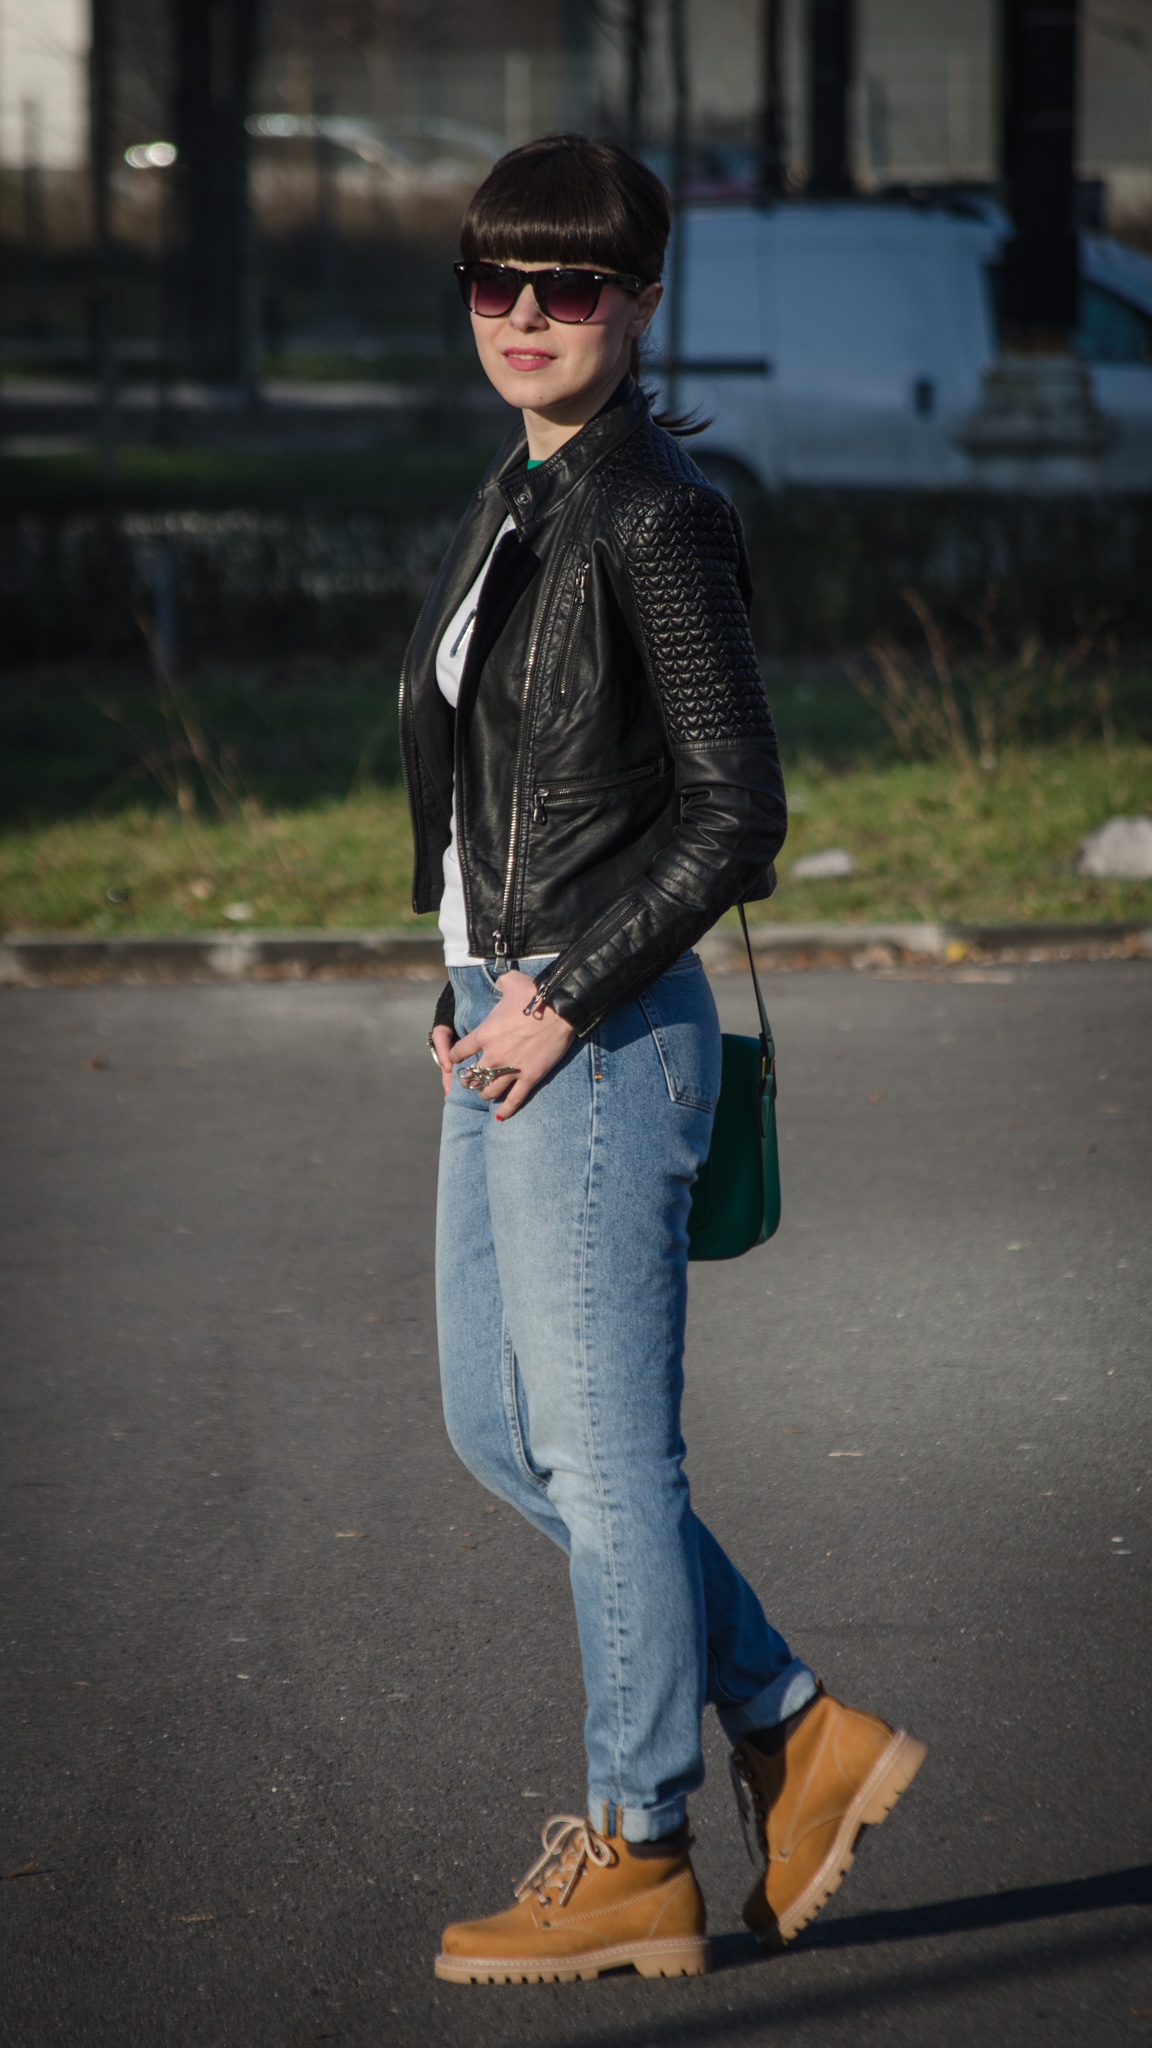 leather jacket new yorker green satchel bag tonka jeans mom jeans h&m worker camel boots romanian producer green white sheinside top bangs rocking rocker coca-cola dog tag